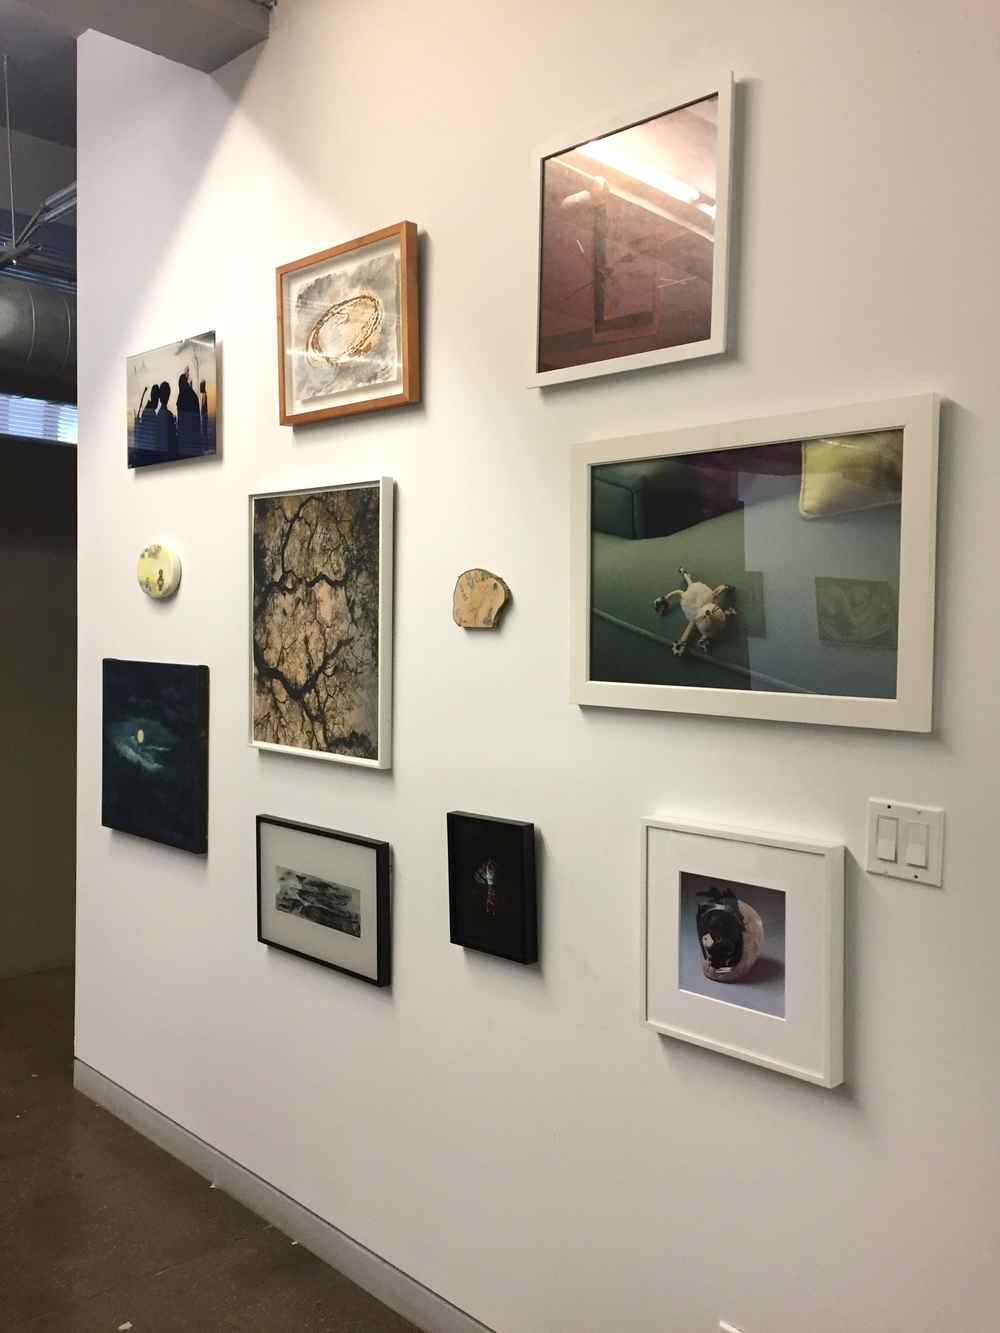 Small Works installation view  Featured artists: Liselot van der Heijden, Patricia Leighton, Jonathan Ehrenberg, Jeanette May, Eunjung Hwang, Beth Ganz, Cecile Chong, Greg Kwiatek, Vicky Colombet, Rhona Bitner, Keren Benbenisty